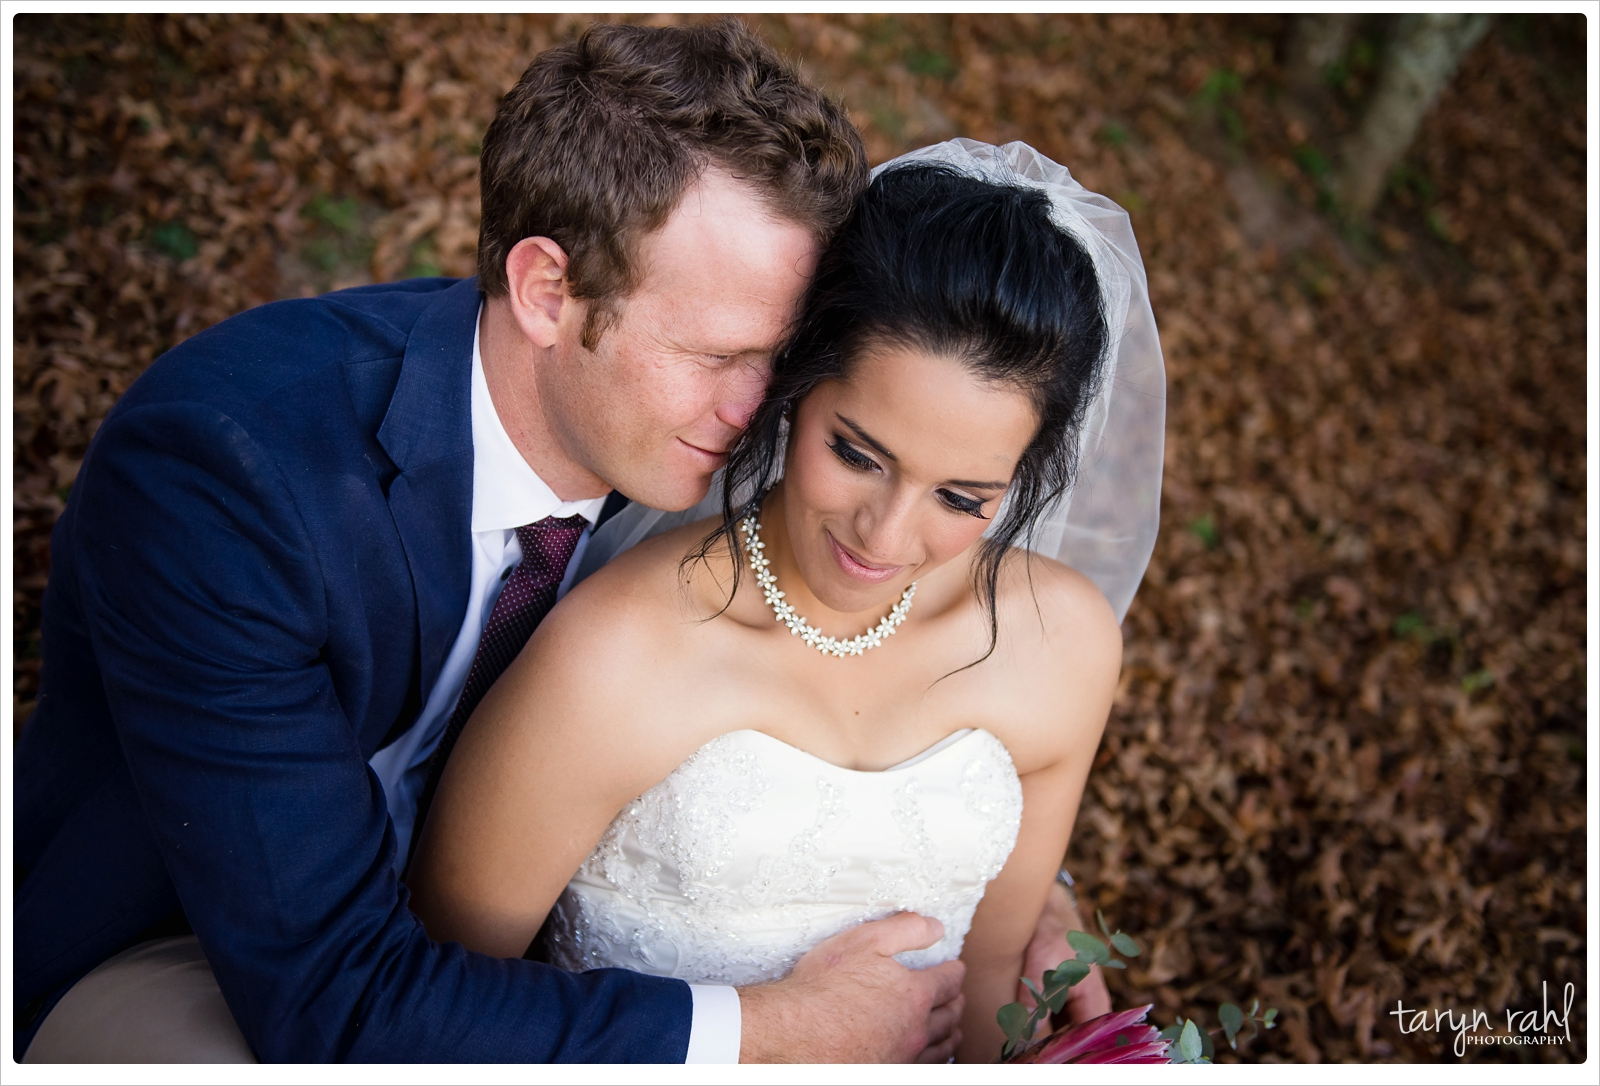 Mary Ann and Brian | Wedding in Zuurberg Mountain Village